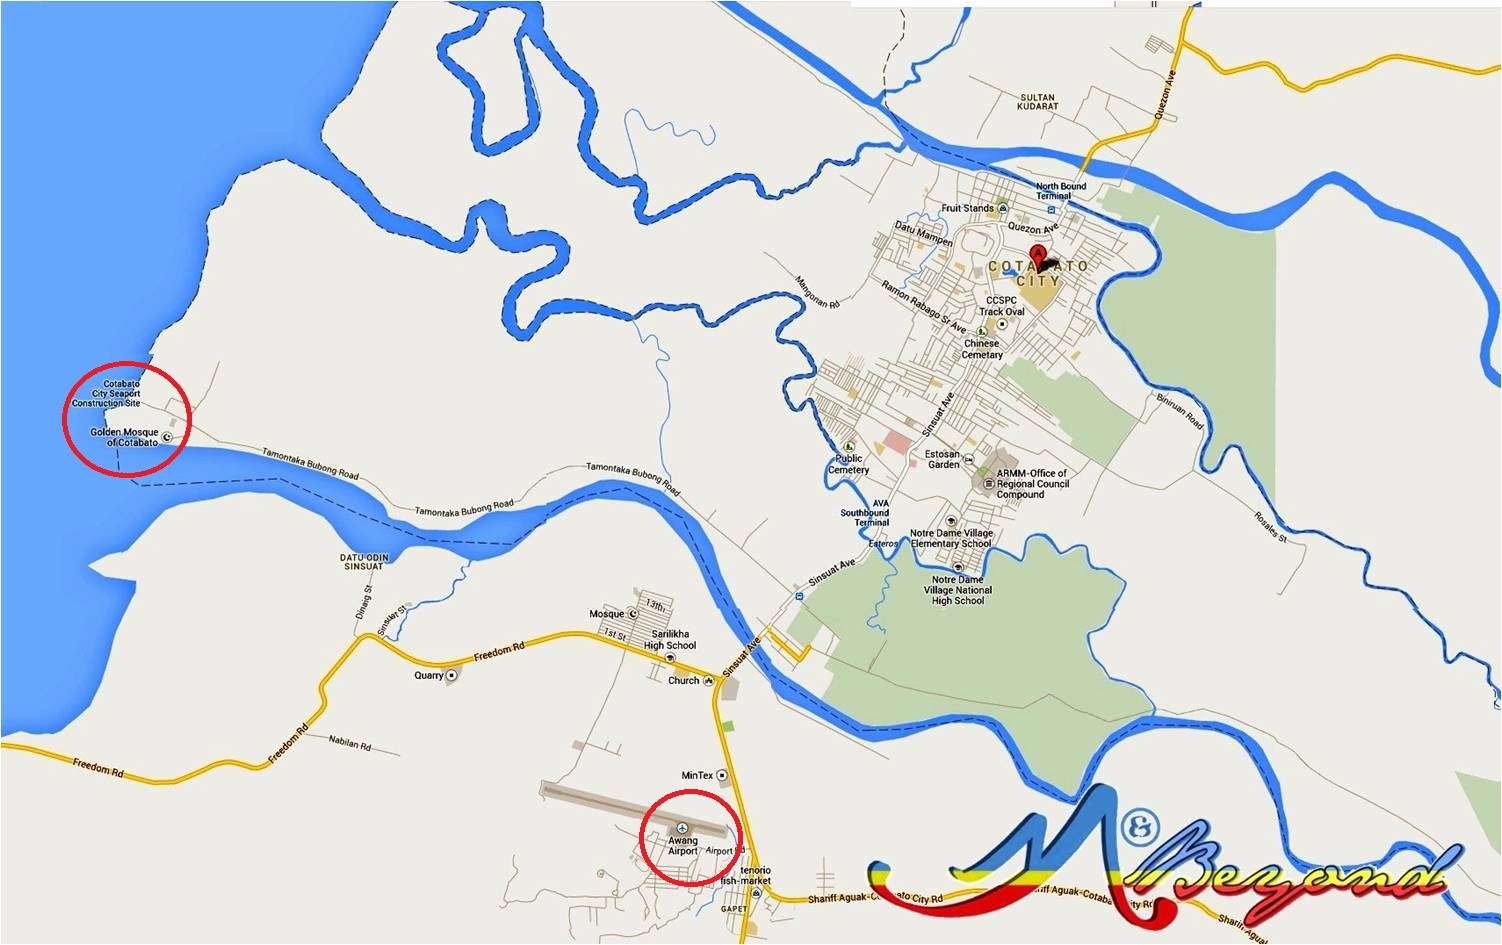 cotabato city map, map cotabato city, cotabato city airport, cotabato city mosque, what to do in cotabato, cotabato attractions